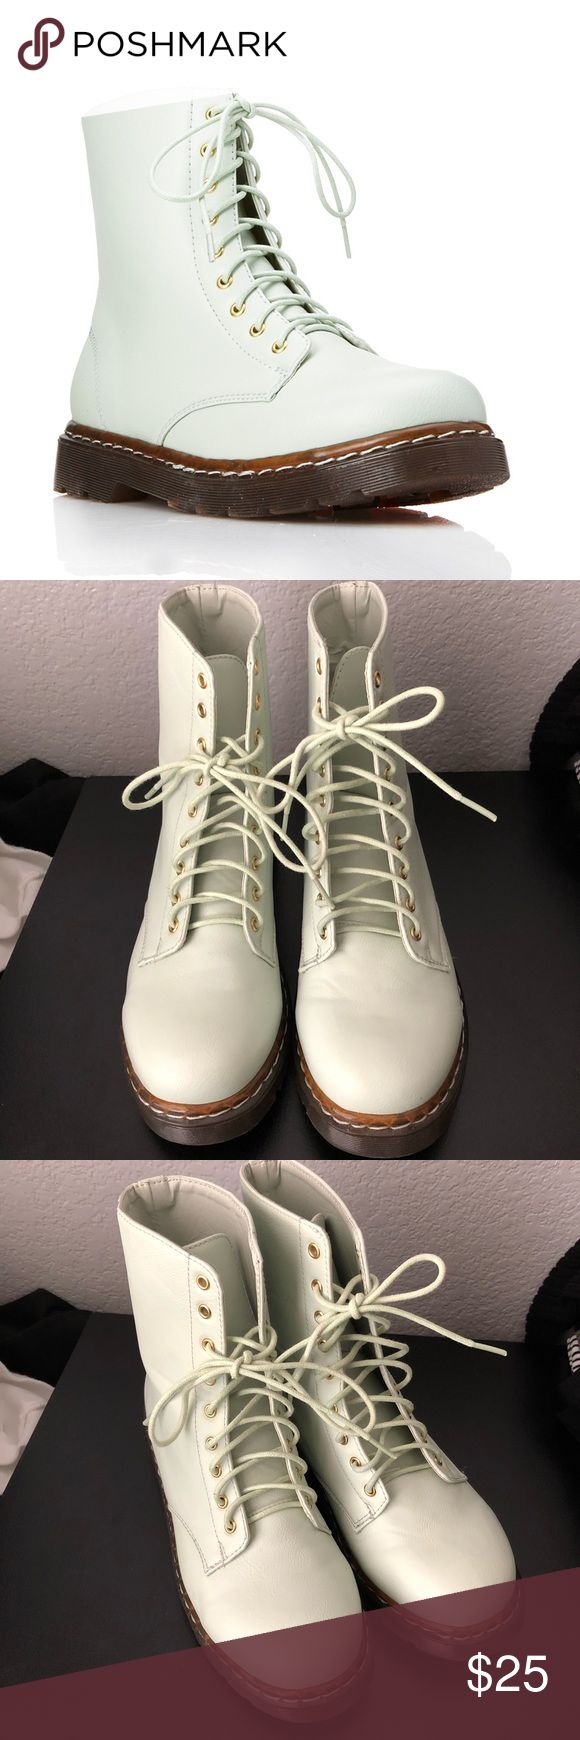 Forever 21 mint rain boots Size 7.5 Very cute and